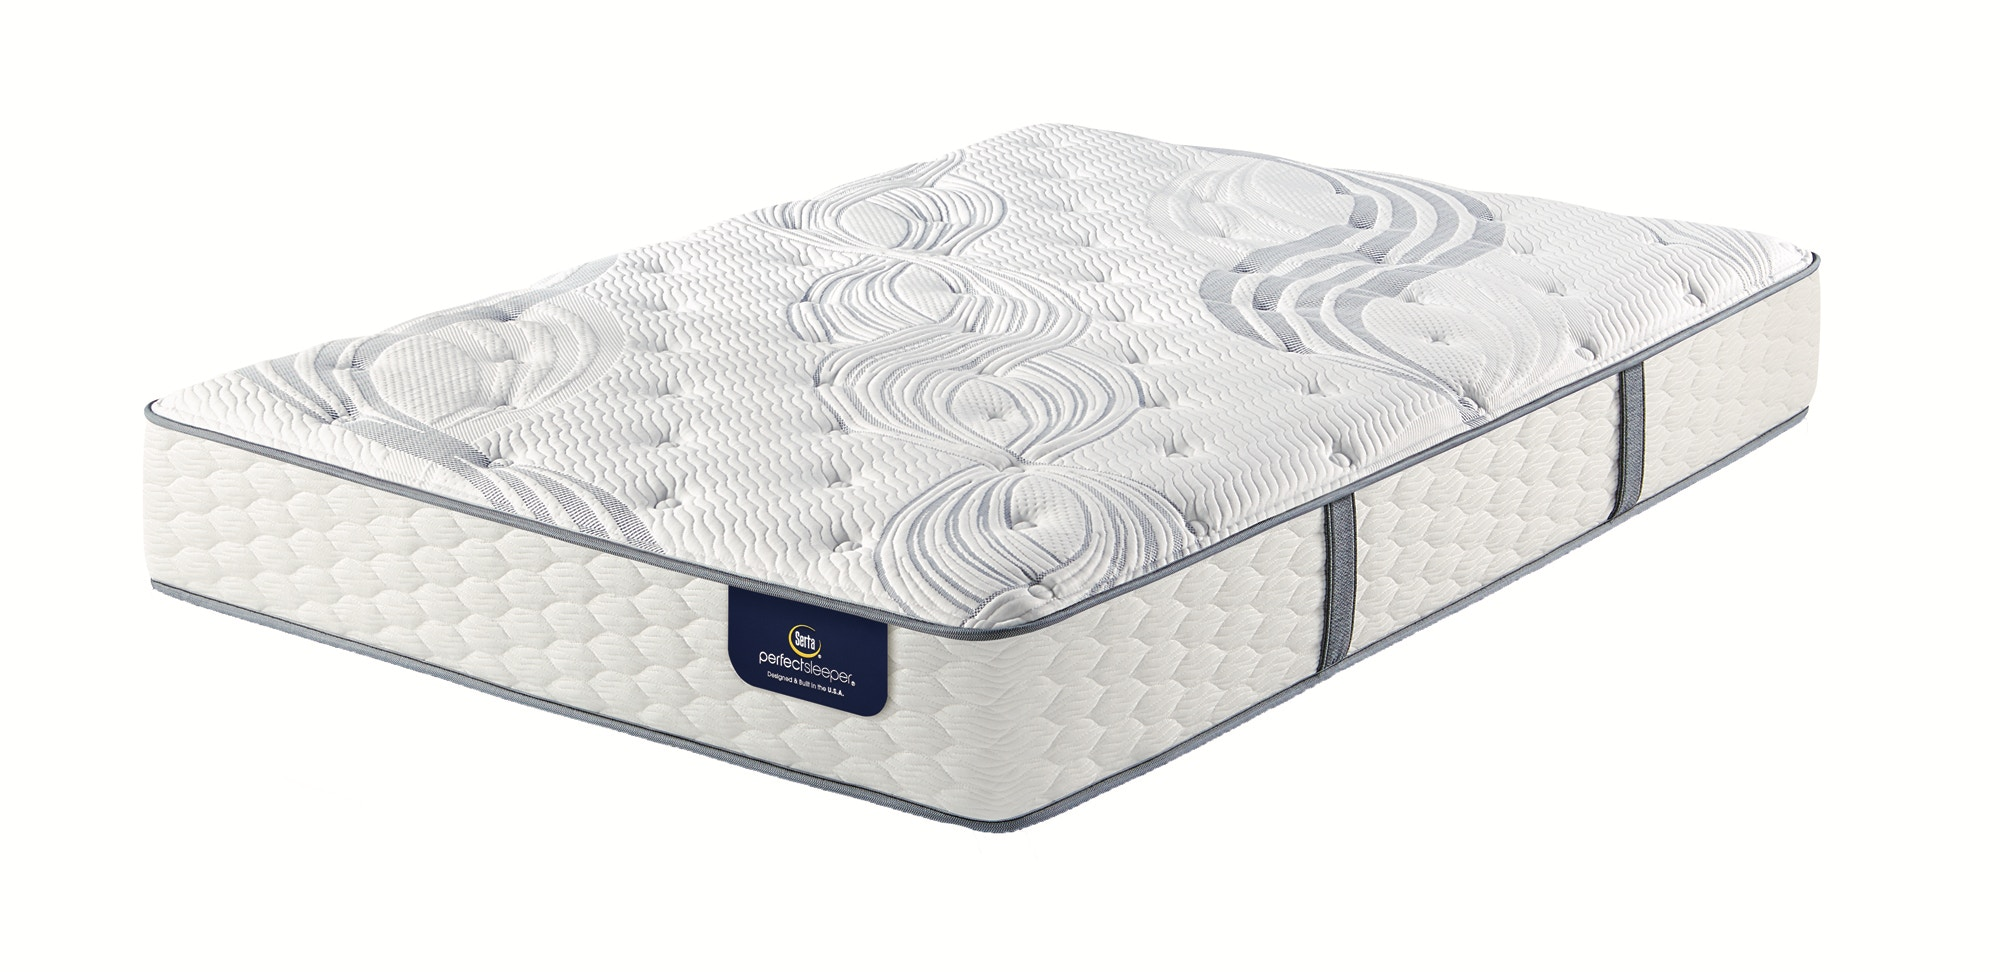 Serta Sweet Dreams Mattress Sertau0027s Great Mattress